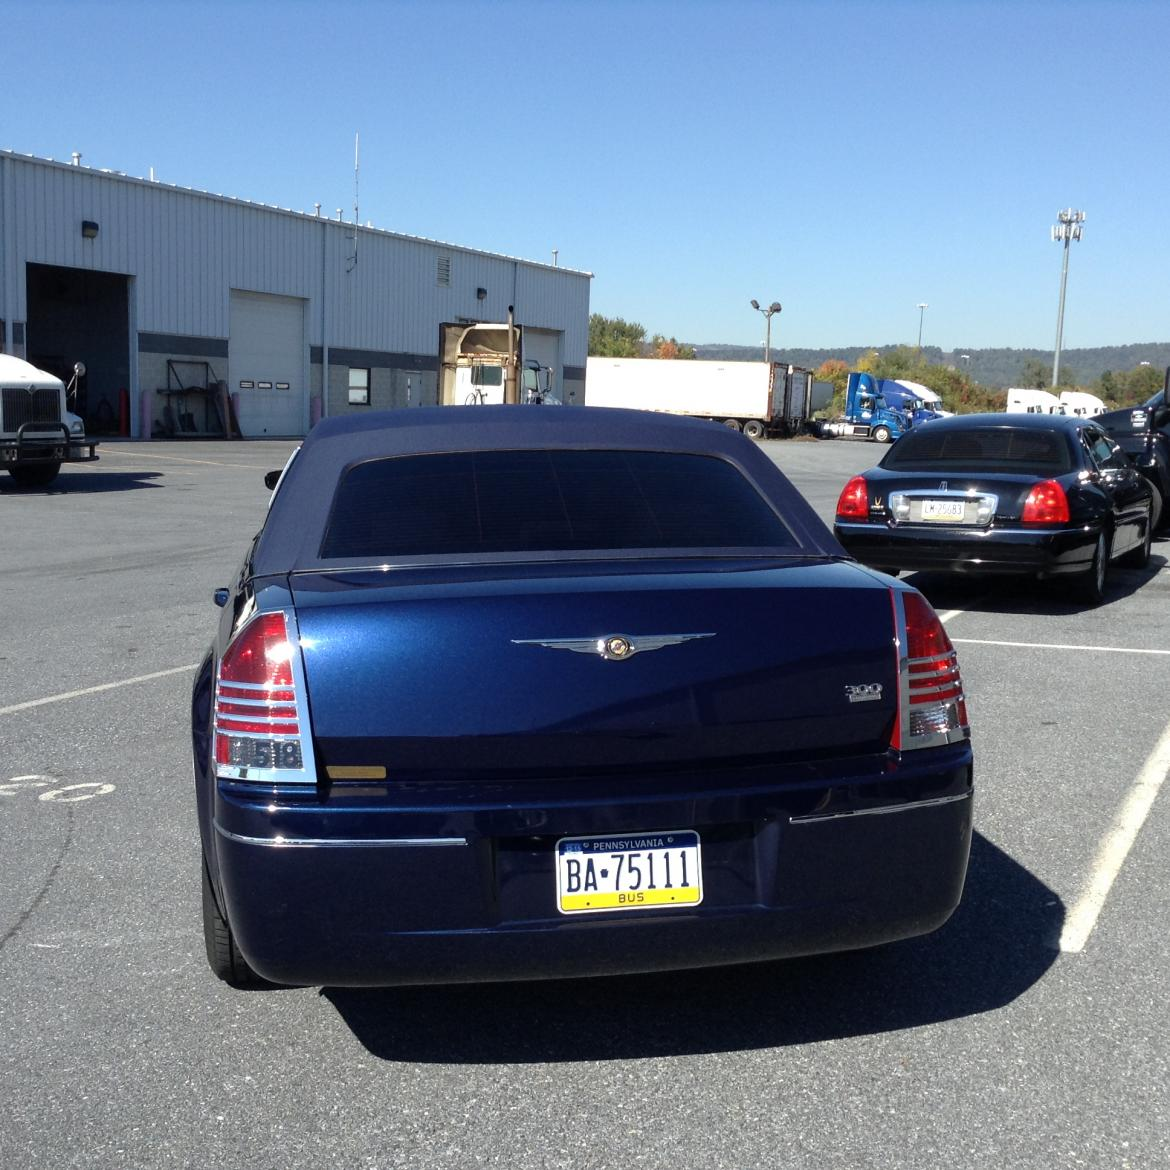 Used 2006 Chrysler 300 For Sale #WS-10058